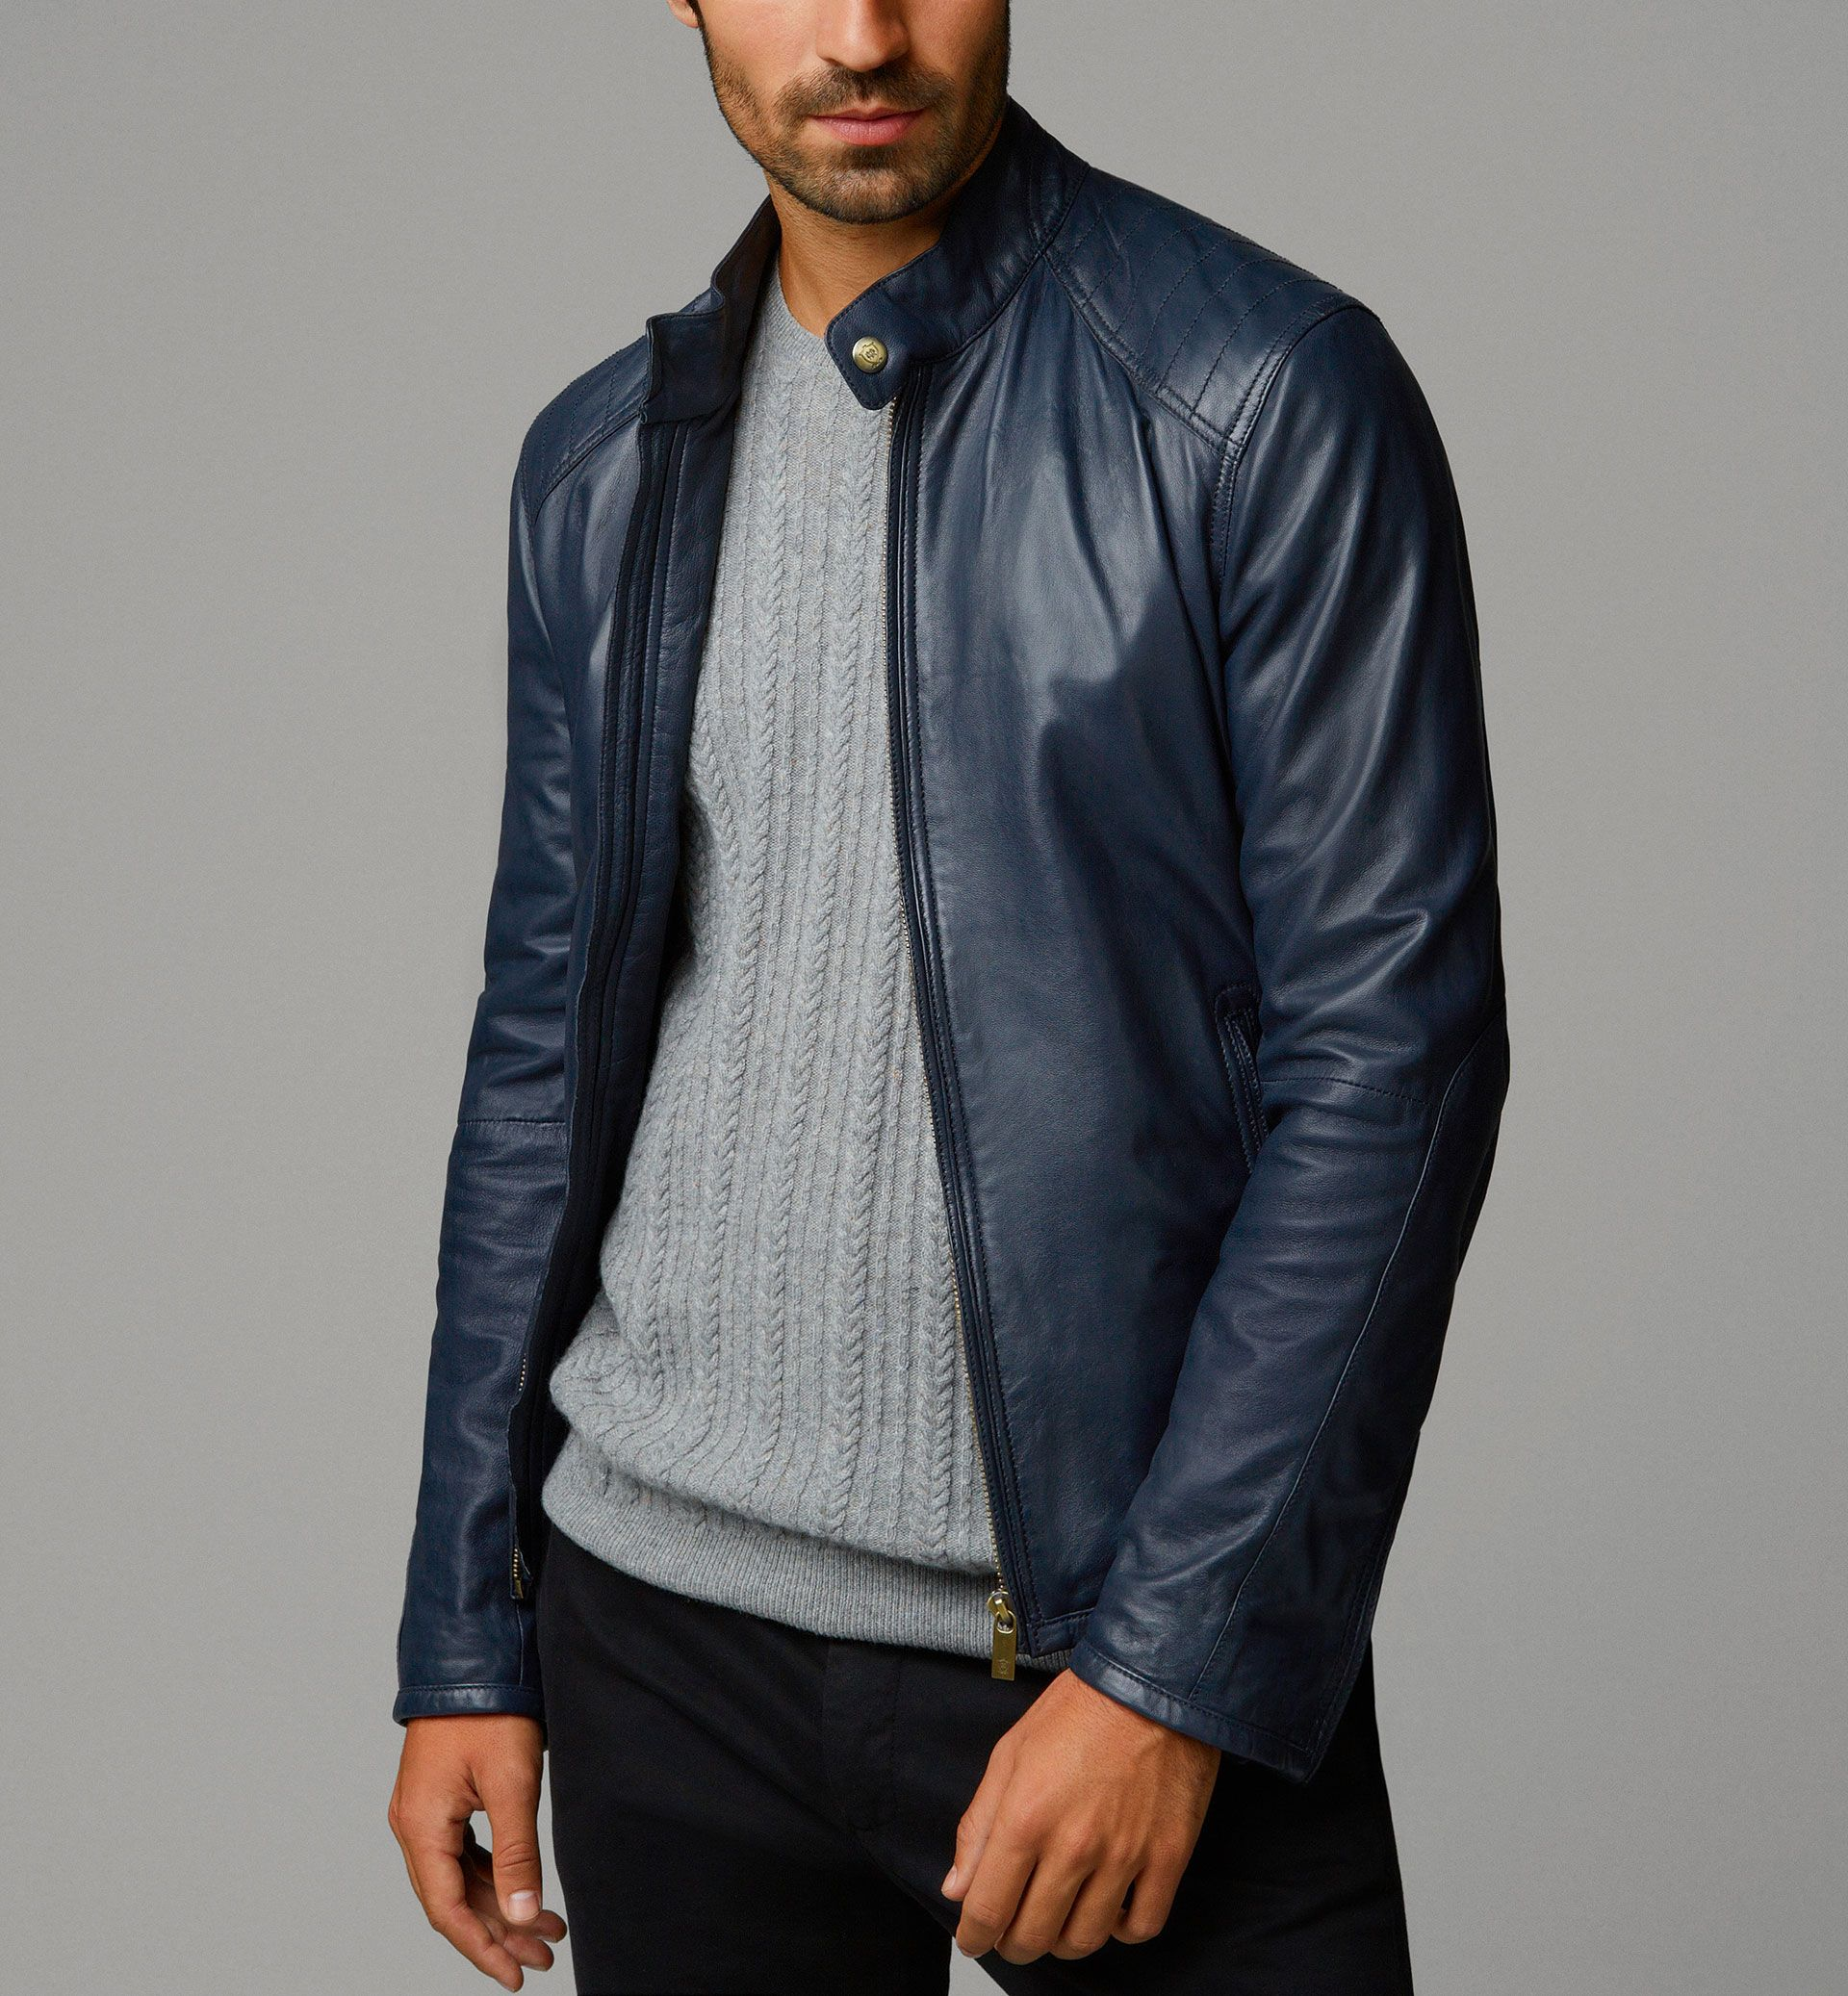 BLUE NAPPA LEATHER JACKET WITH TOPSTITCHING ON THE